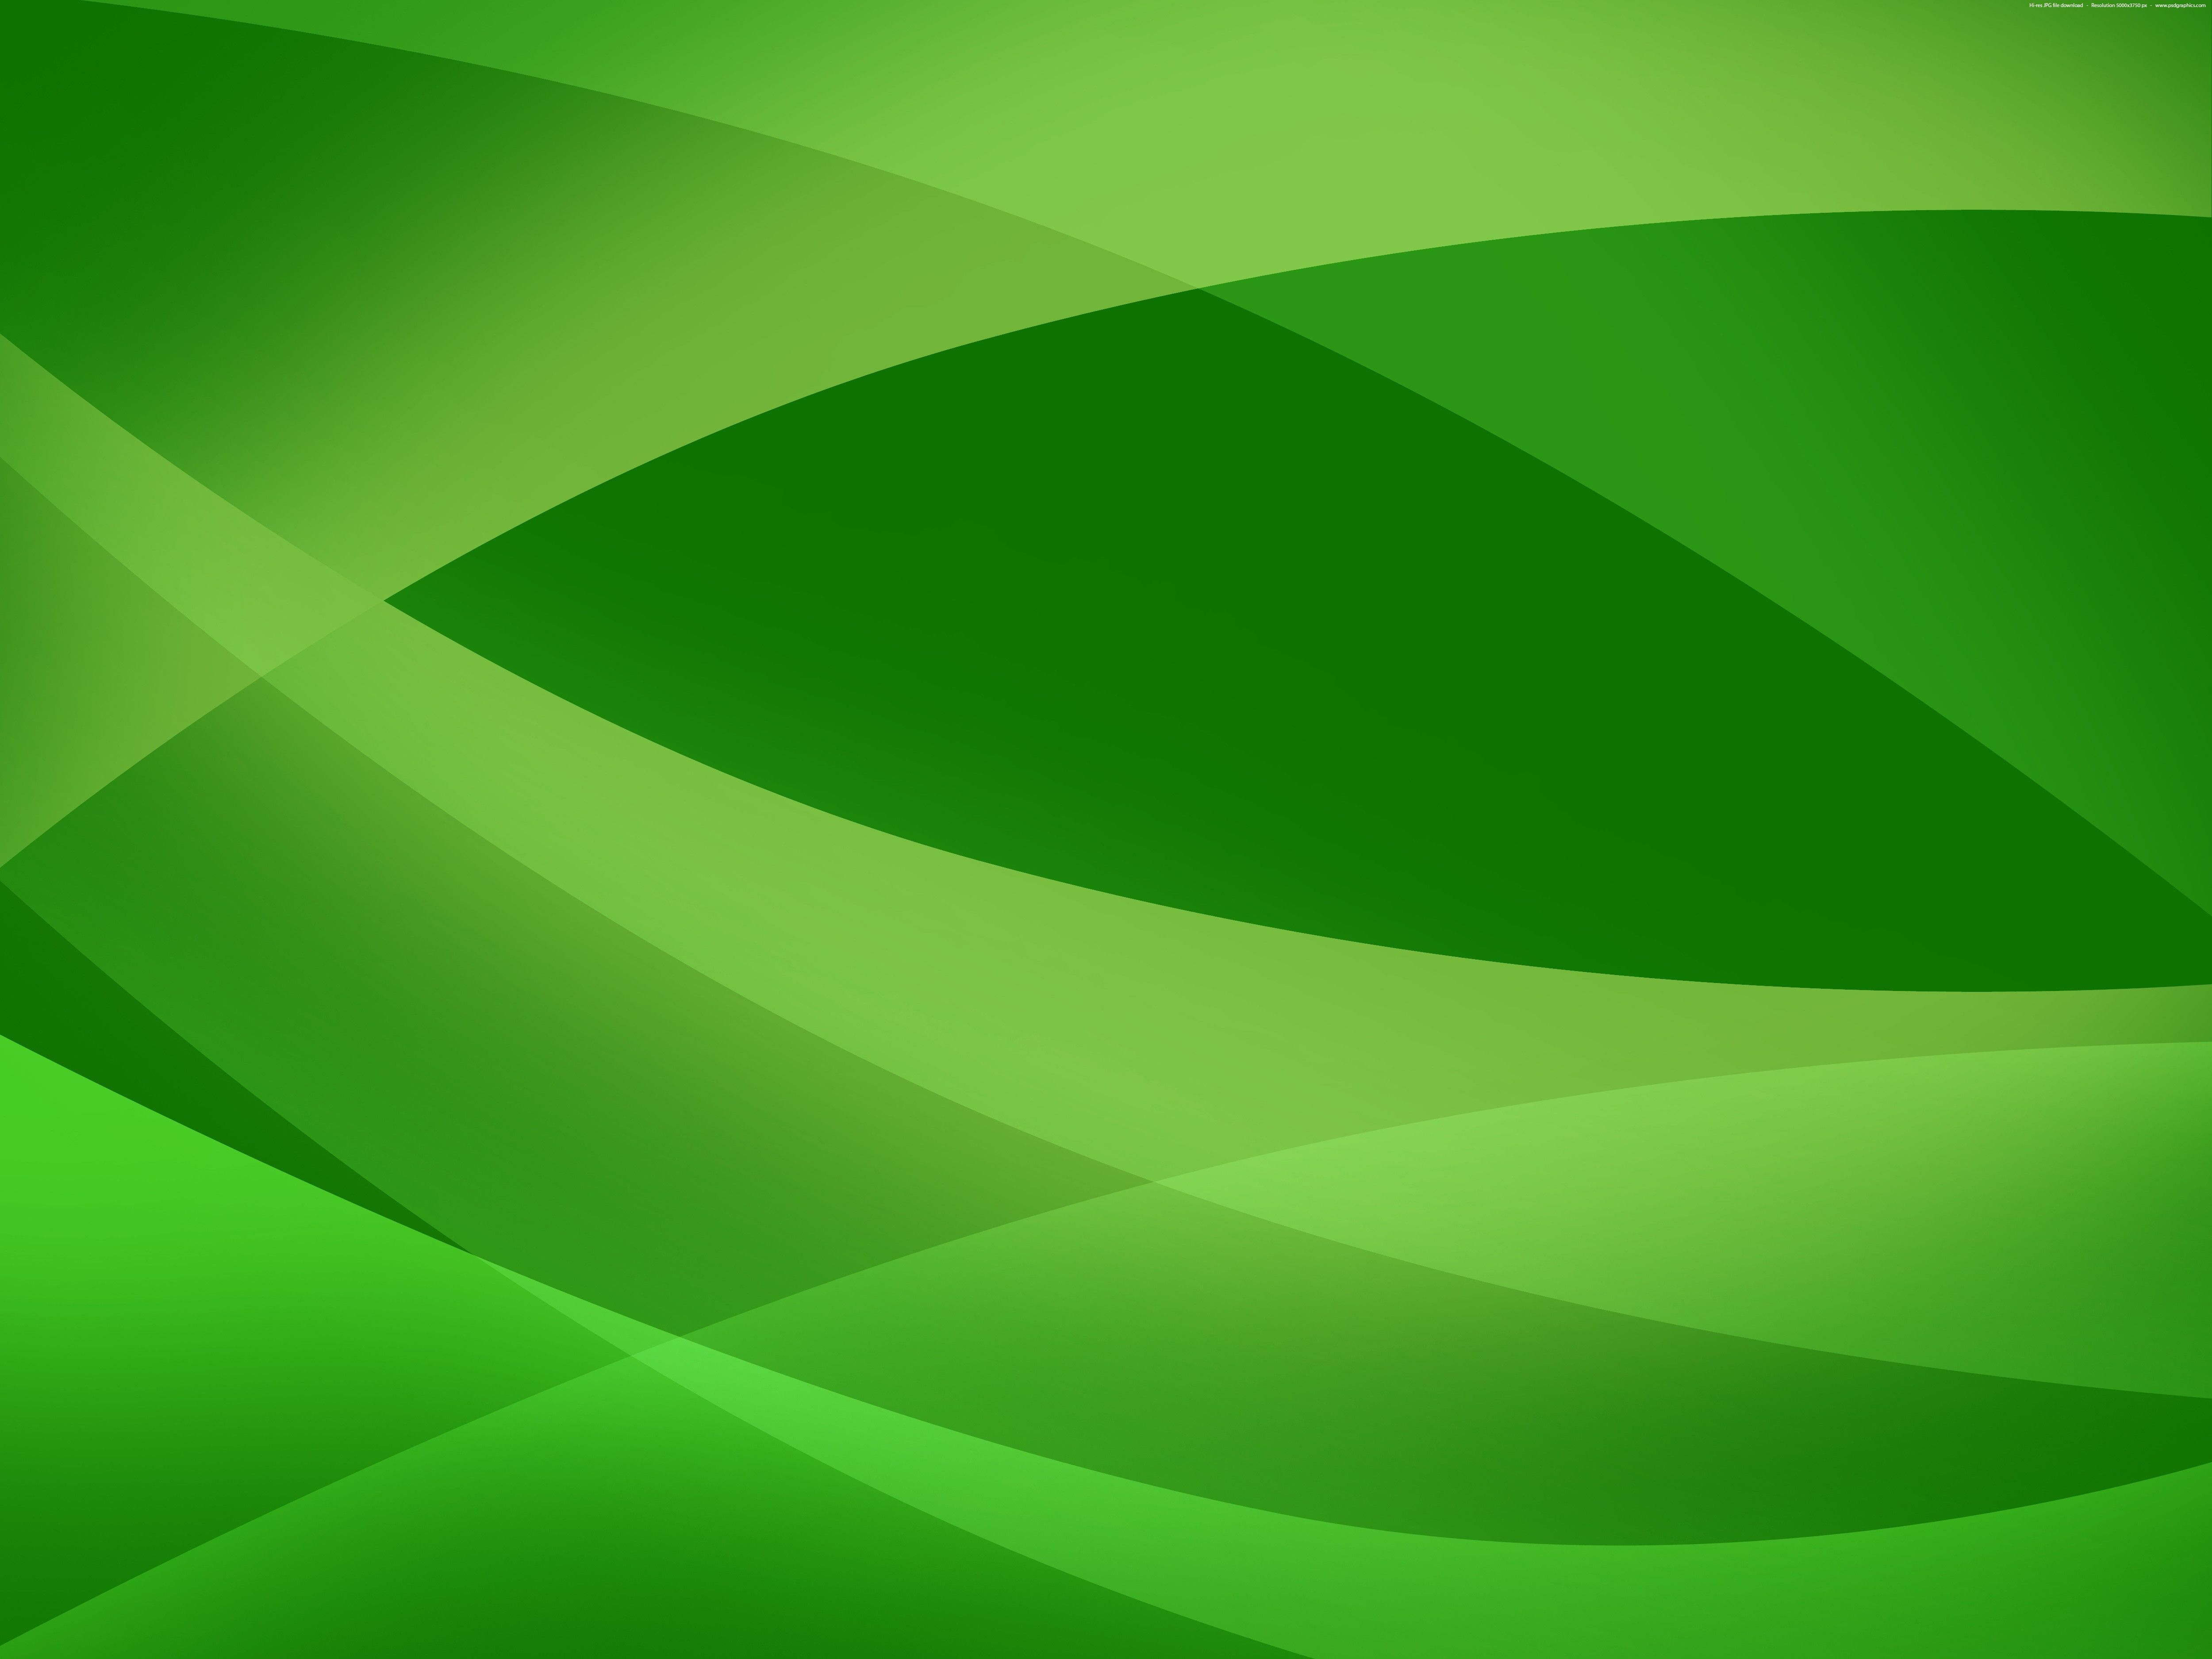 Green Background Free - Google